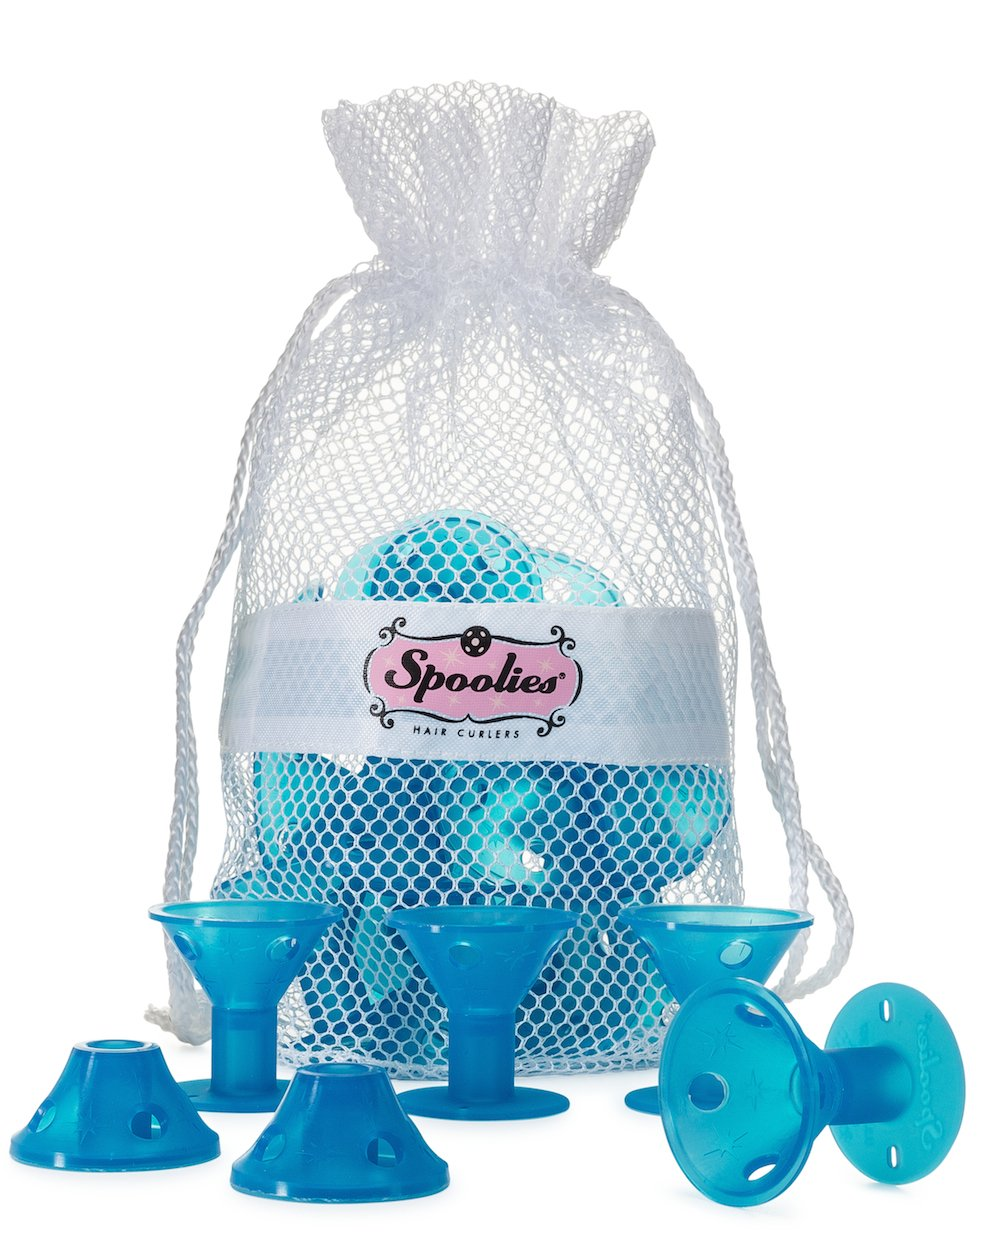 Spoolies Hair Curlers - Jumbo Size, 15 Count with Mesh Bag Gift! Inc. SP3B-1-BB